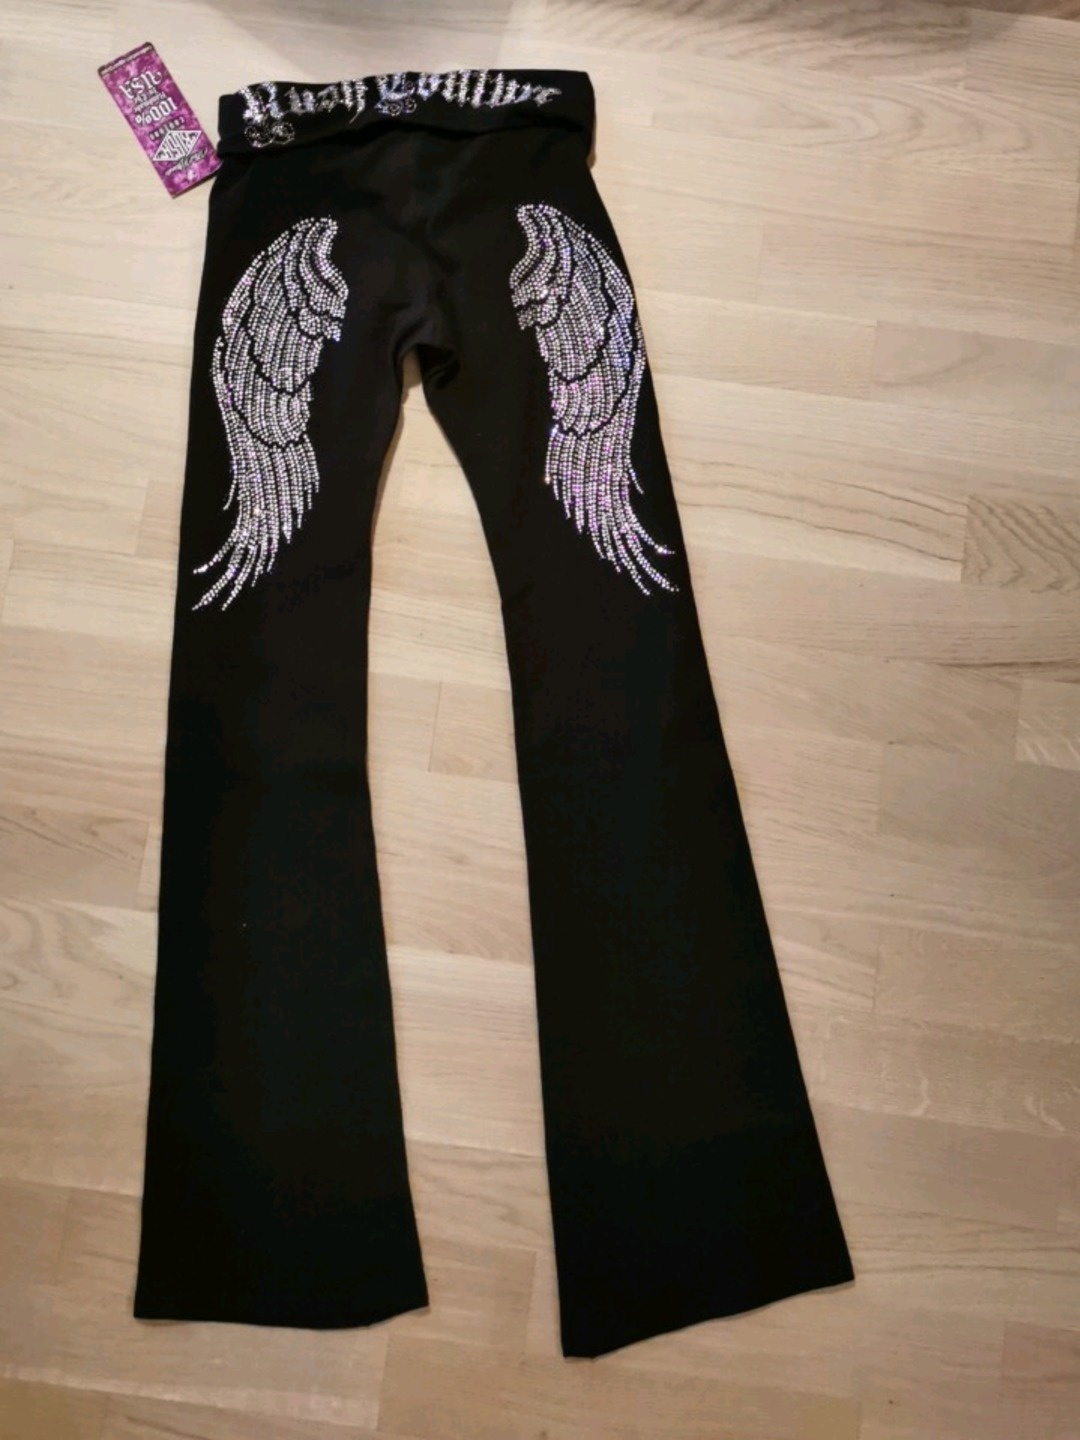 Women's trousers & jeans - RUSH COUTURE photo 2